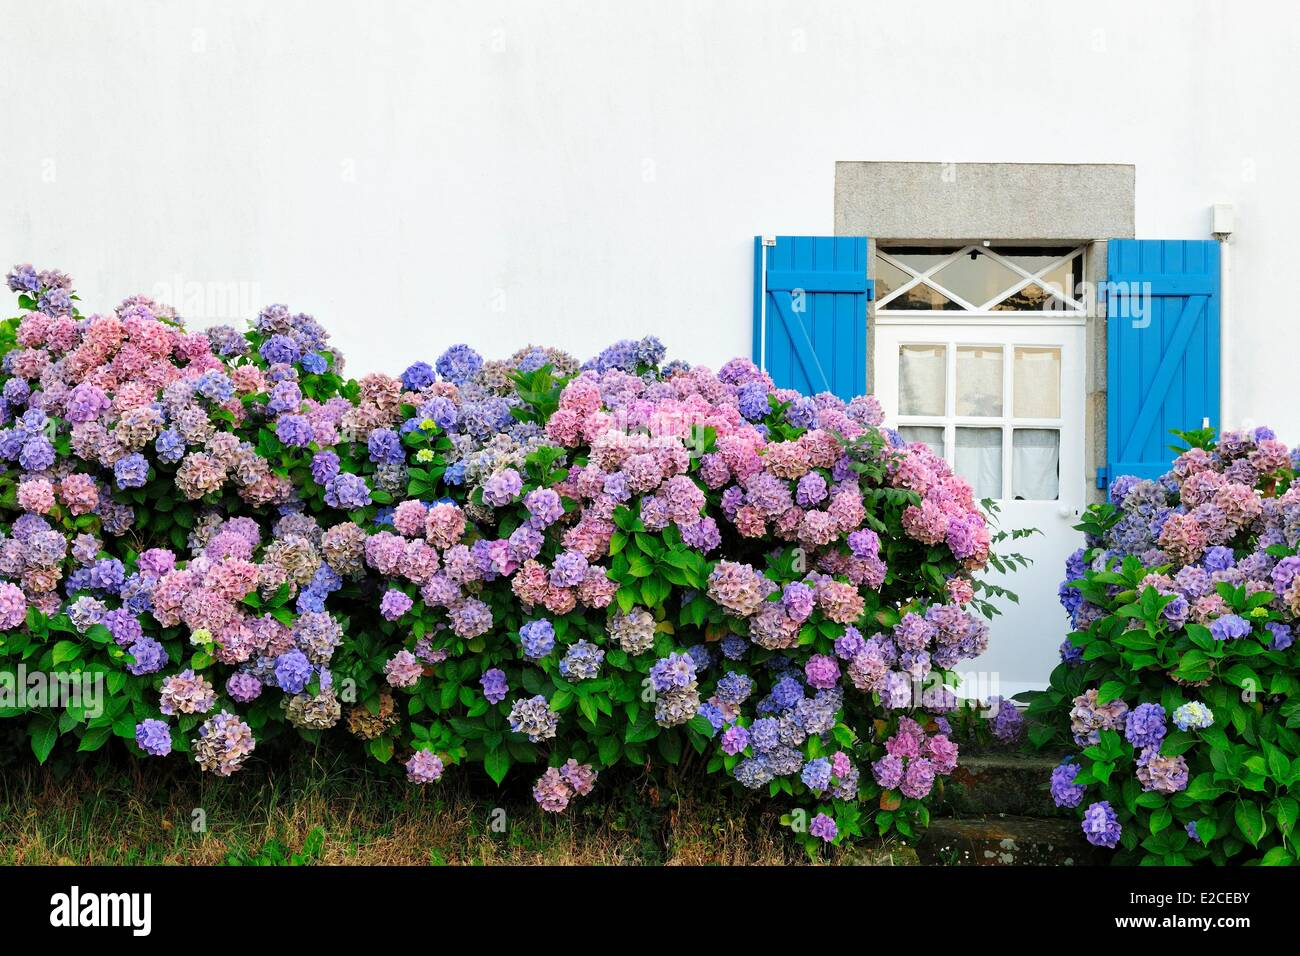 France, Finistere, Fouesnant, hydrangeas - Stock Image